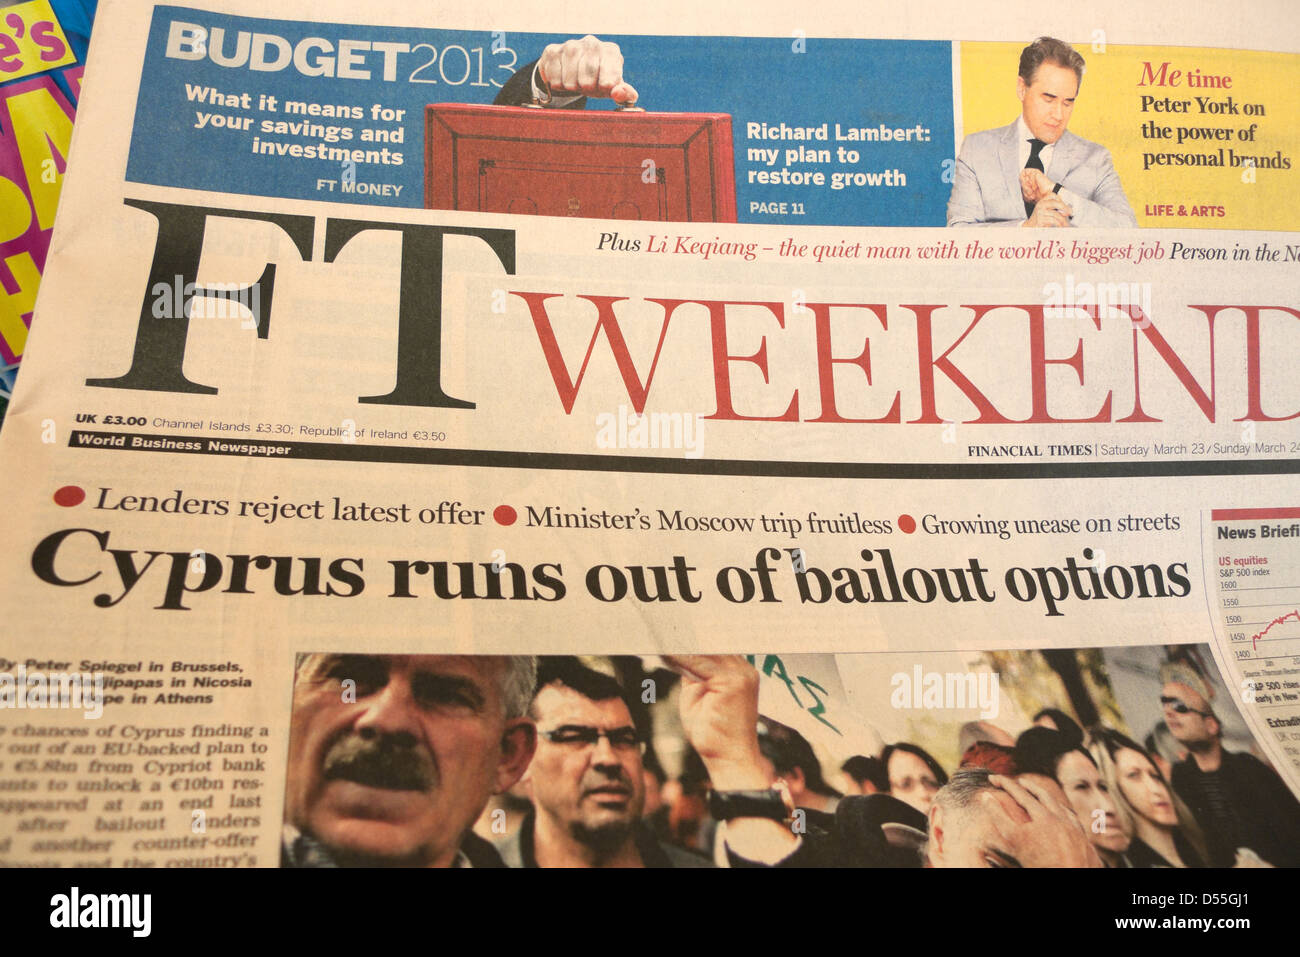 FT Weekend newspaper headline 'Cyprus Runs Out of Bailout Options' 23 March 2013 London England UK - Stock Image